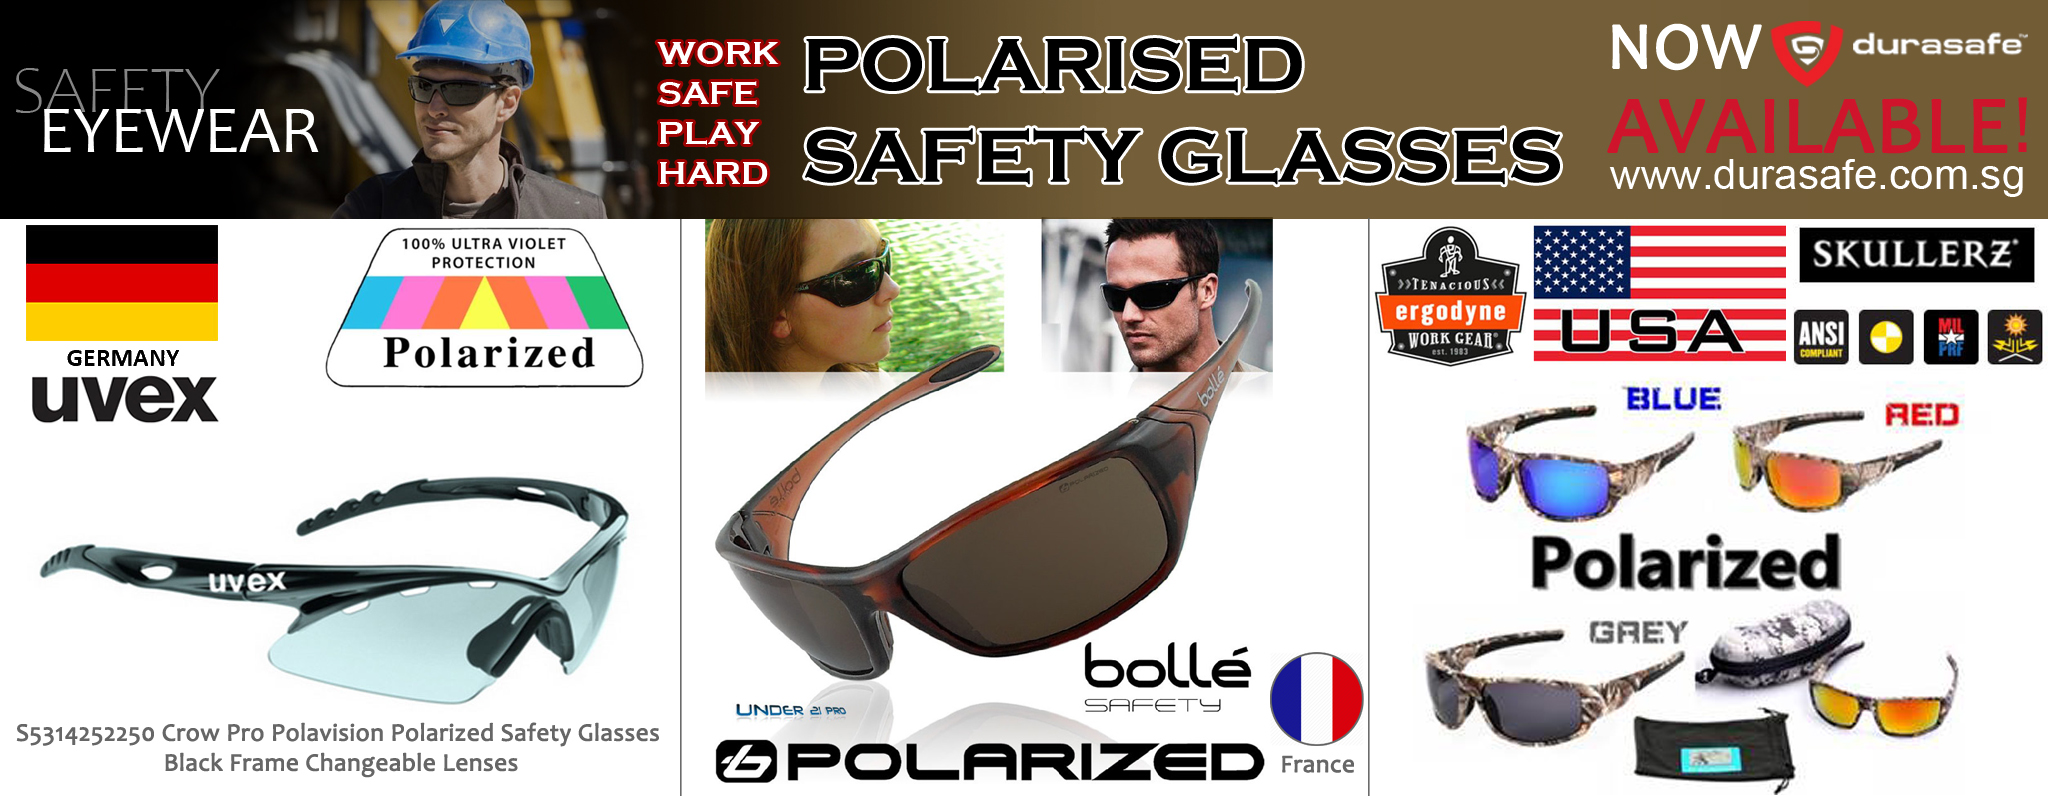 Banner of POLARISED SAFETY GLASSES